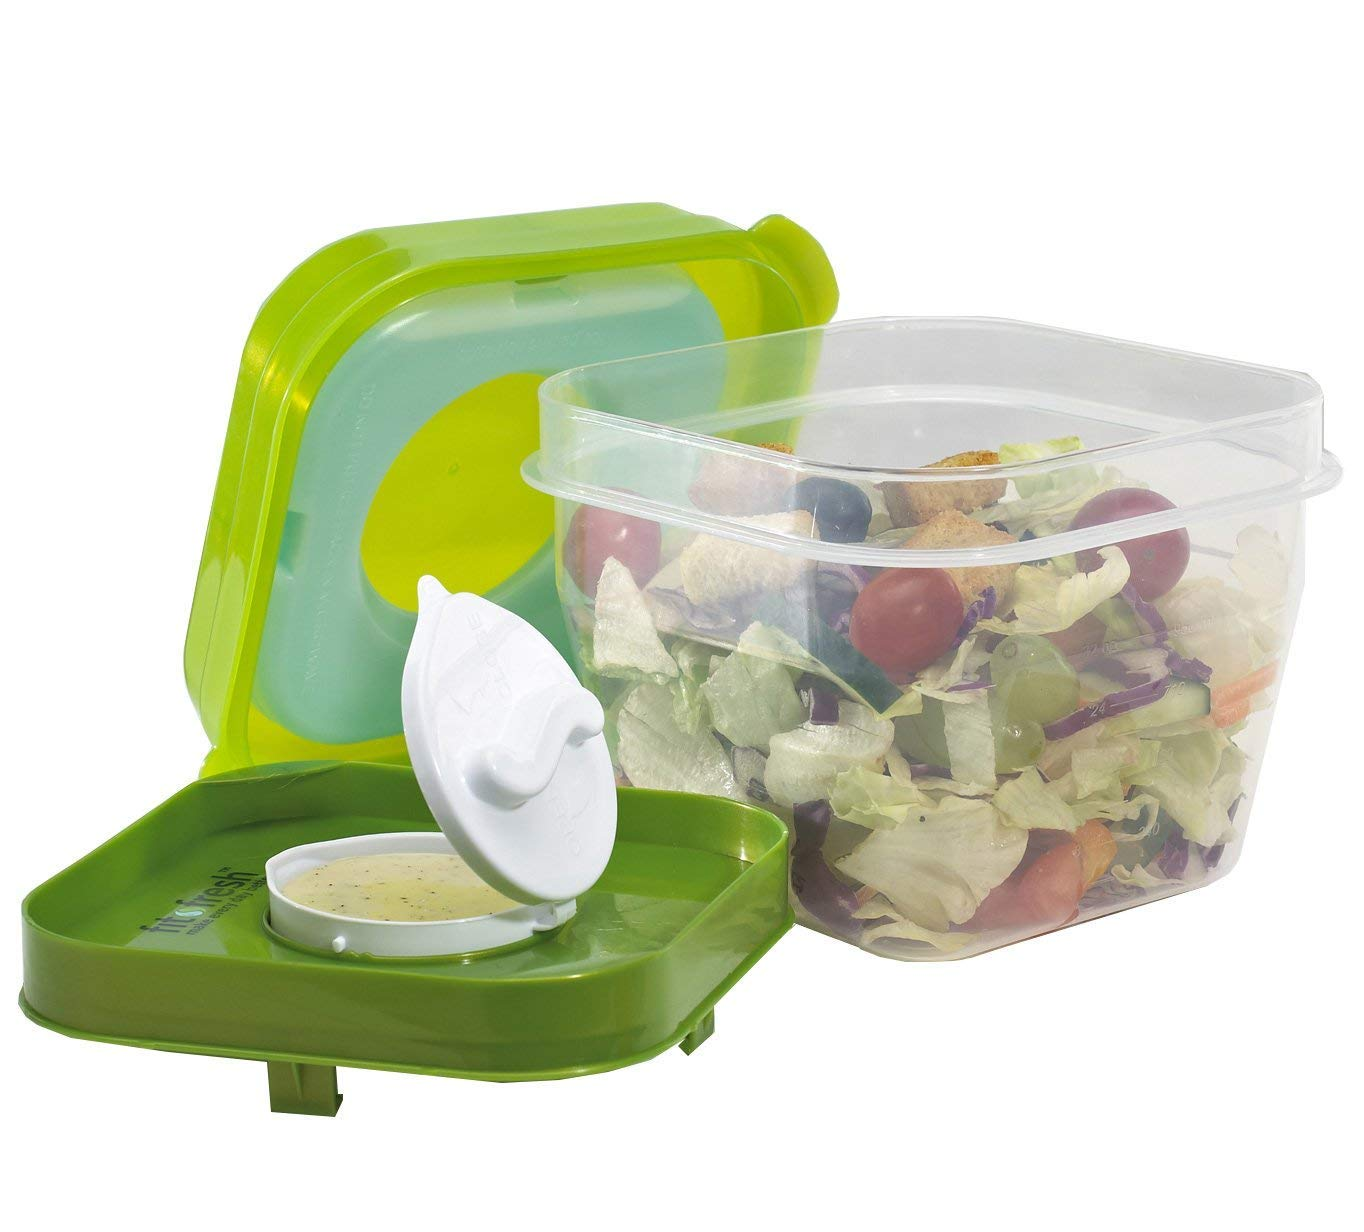 Fit & Fresh Salad Shaker Reusable Plastic Container with Dressing Dispenser and Ice Pack, Healthy Lunch Box Set, 4-Cup Capacity, BPA-Free Fit and Fresh 210FF